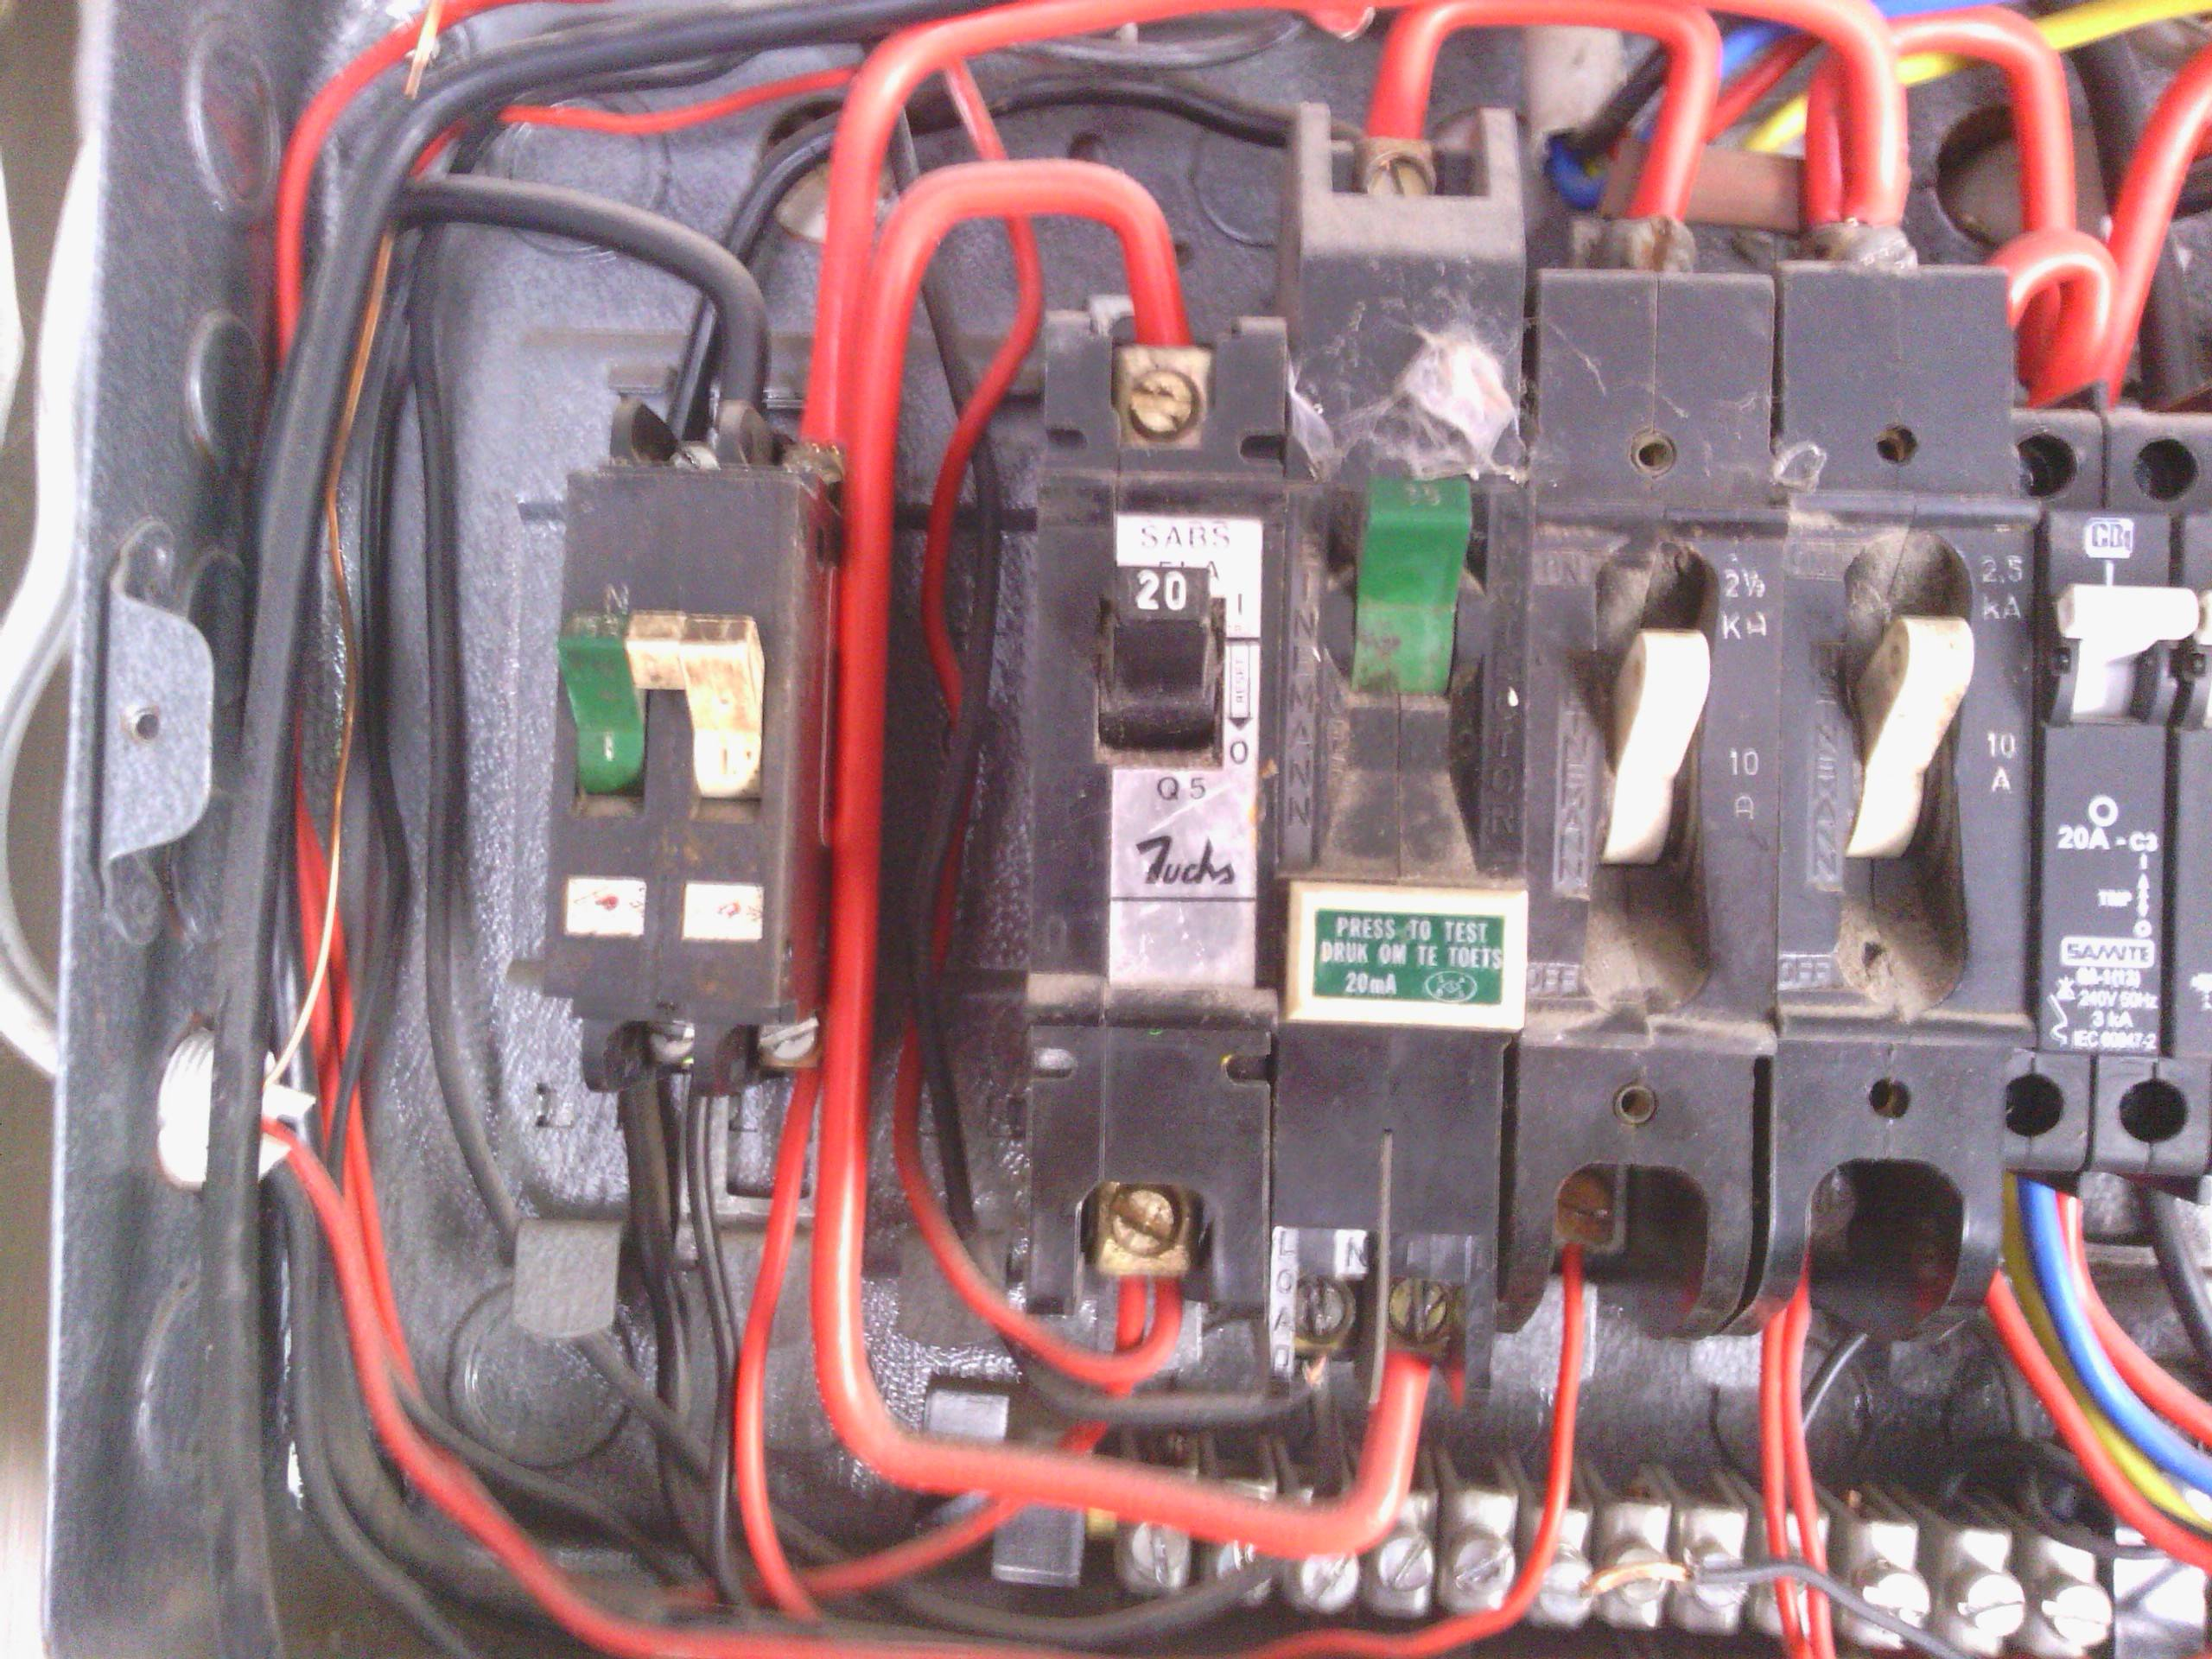 110 Water Heater Wiring Diagram Electrical Why Two Breakers One For The Line One For